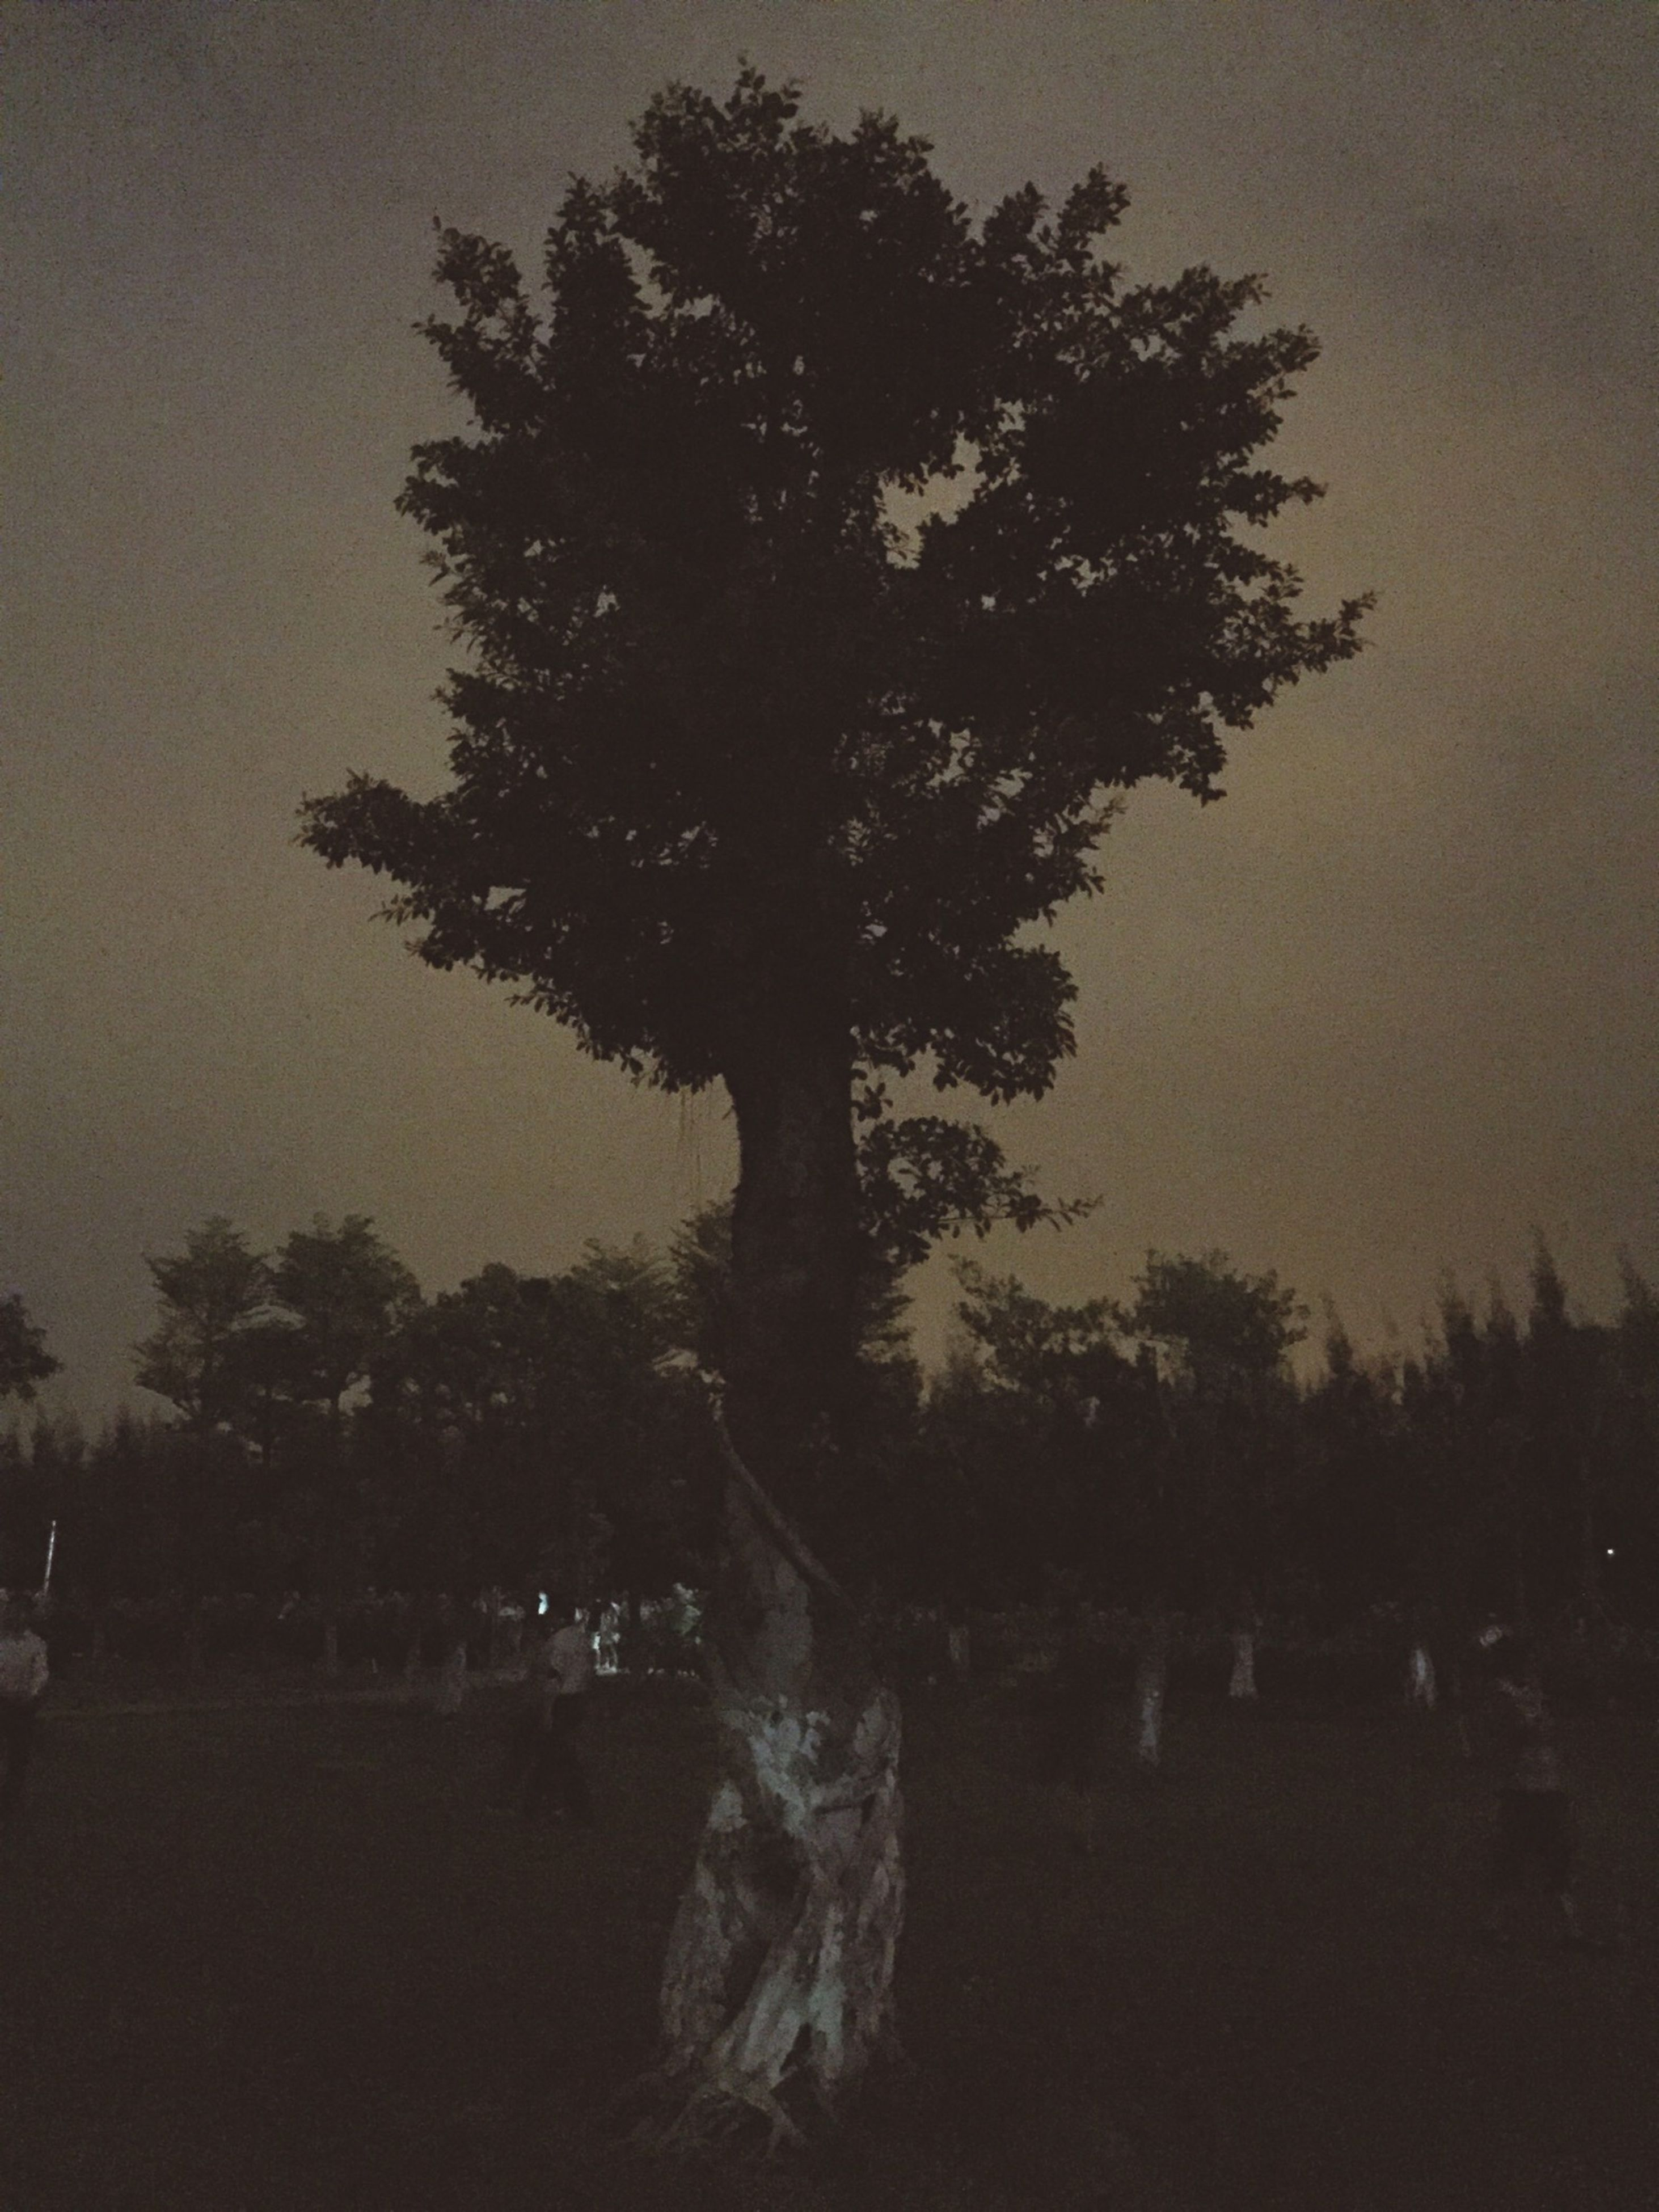 tree, silhouette, tranquility, tranquil scene, sky, nature, growth, scenics, beauty in nature, tree trunk, landscape, branch, sunset, dusk, outdoors, idyllic, non-urban scene, field, no people, park - man made space